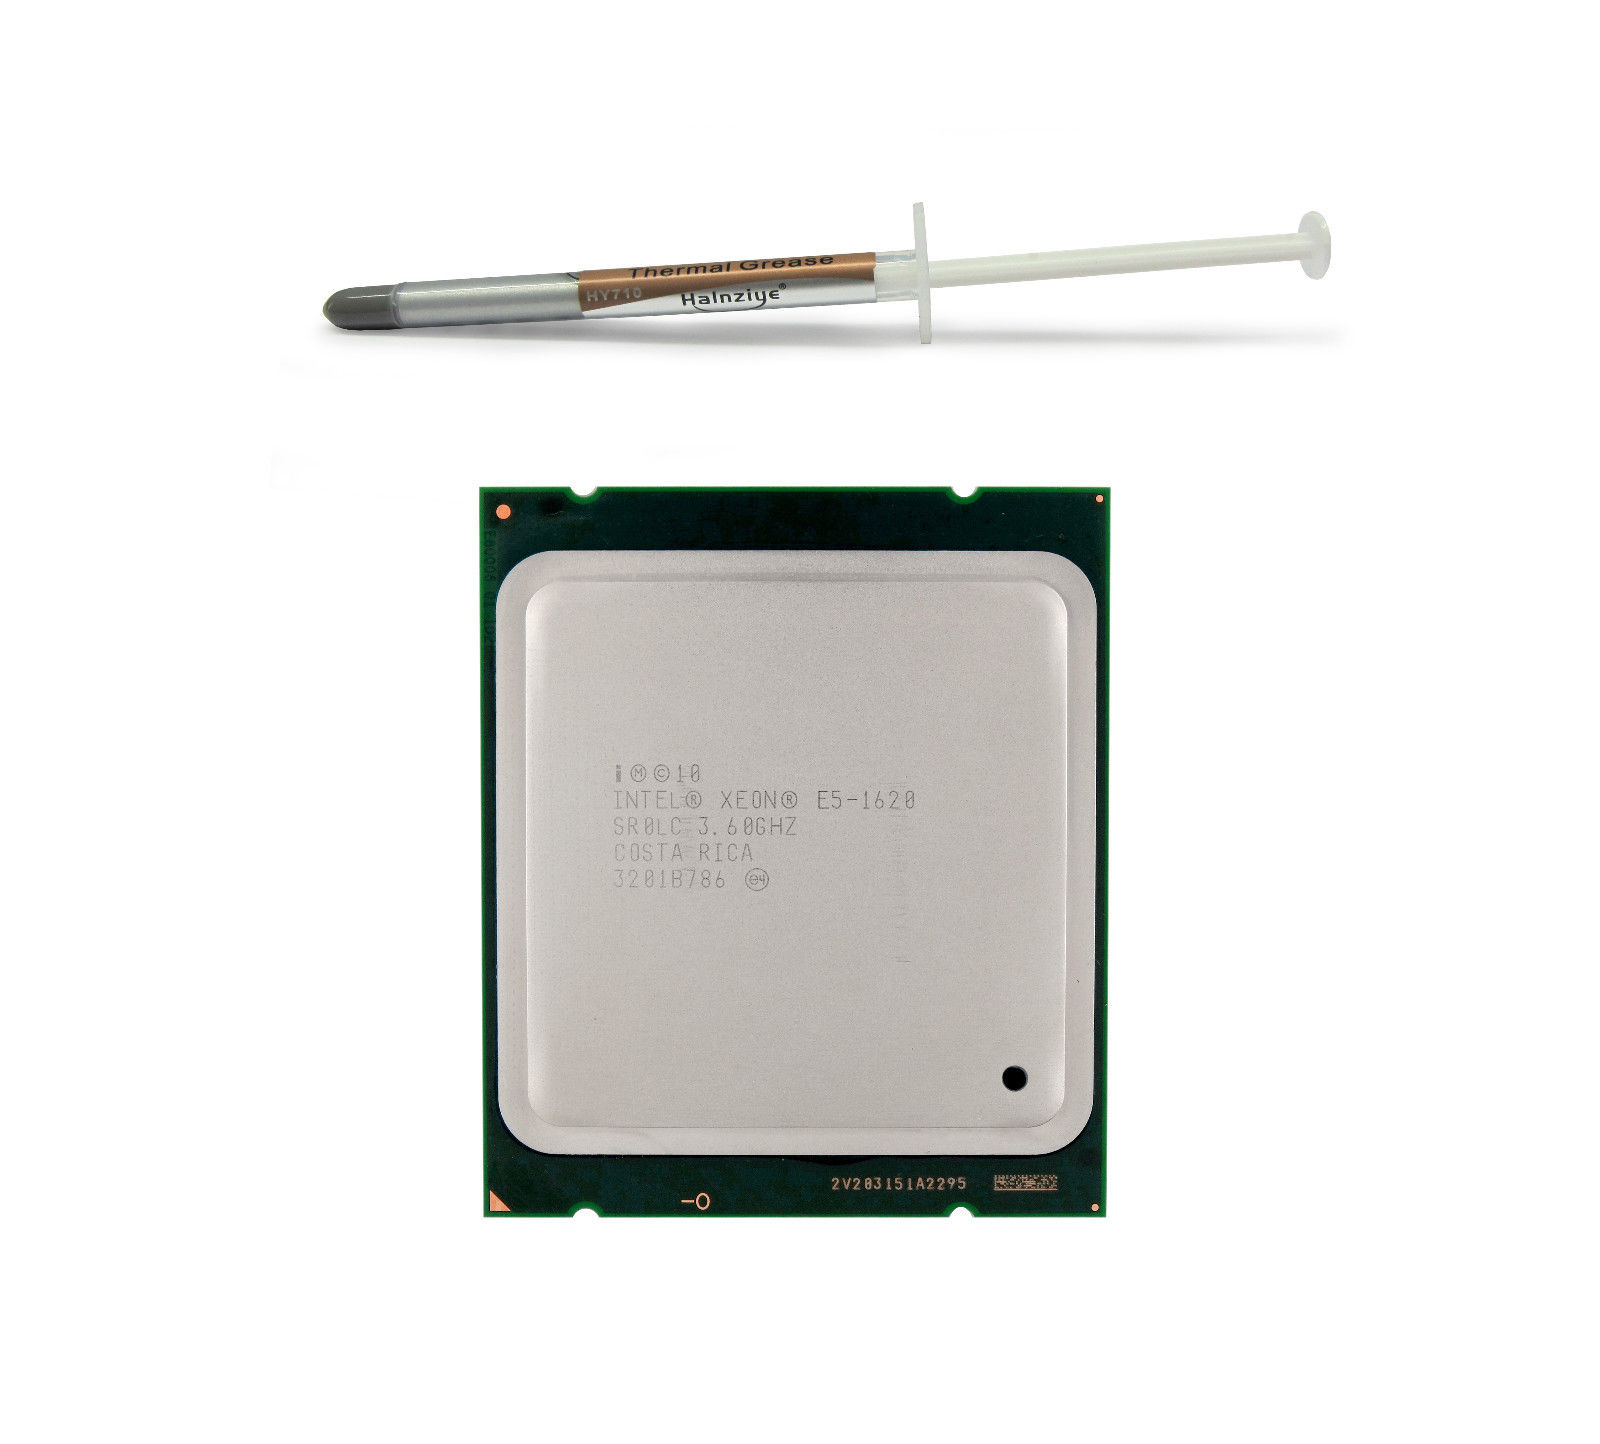 INTEL XEON E5-1620 3.6GHZ 4 CORE 10MB CACHE LGA 2011 PROCESSOR (SR0LC)